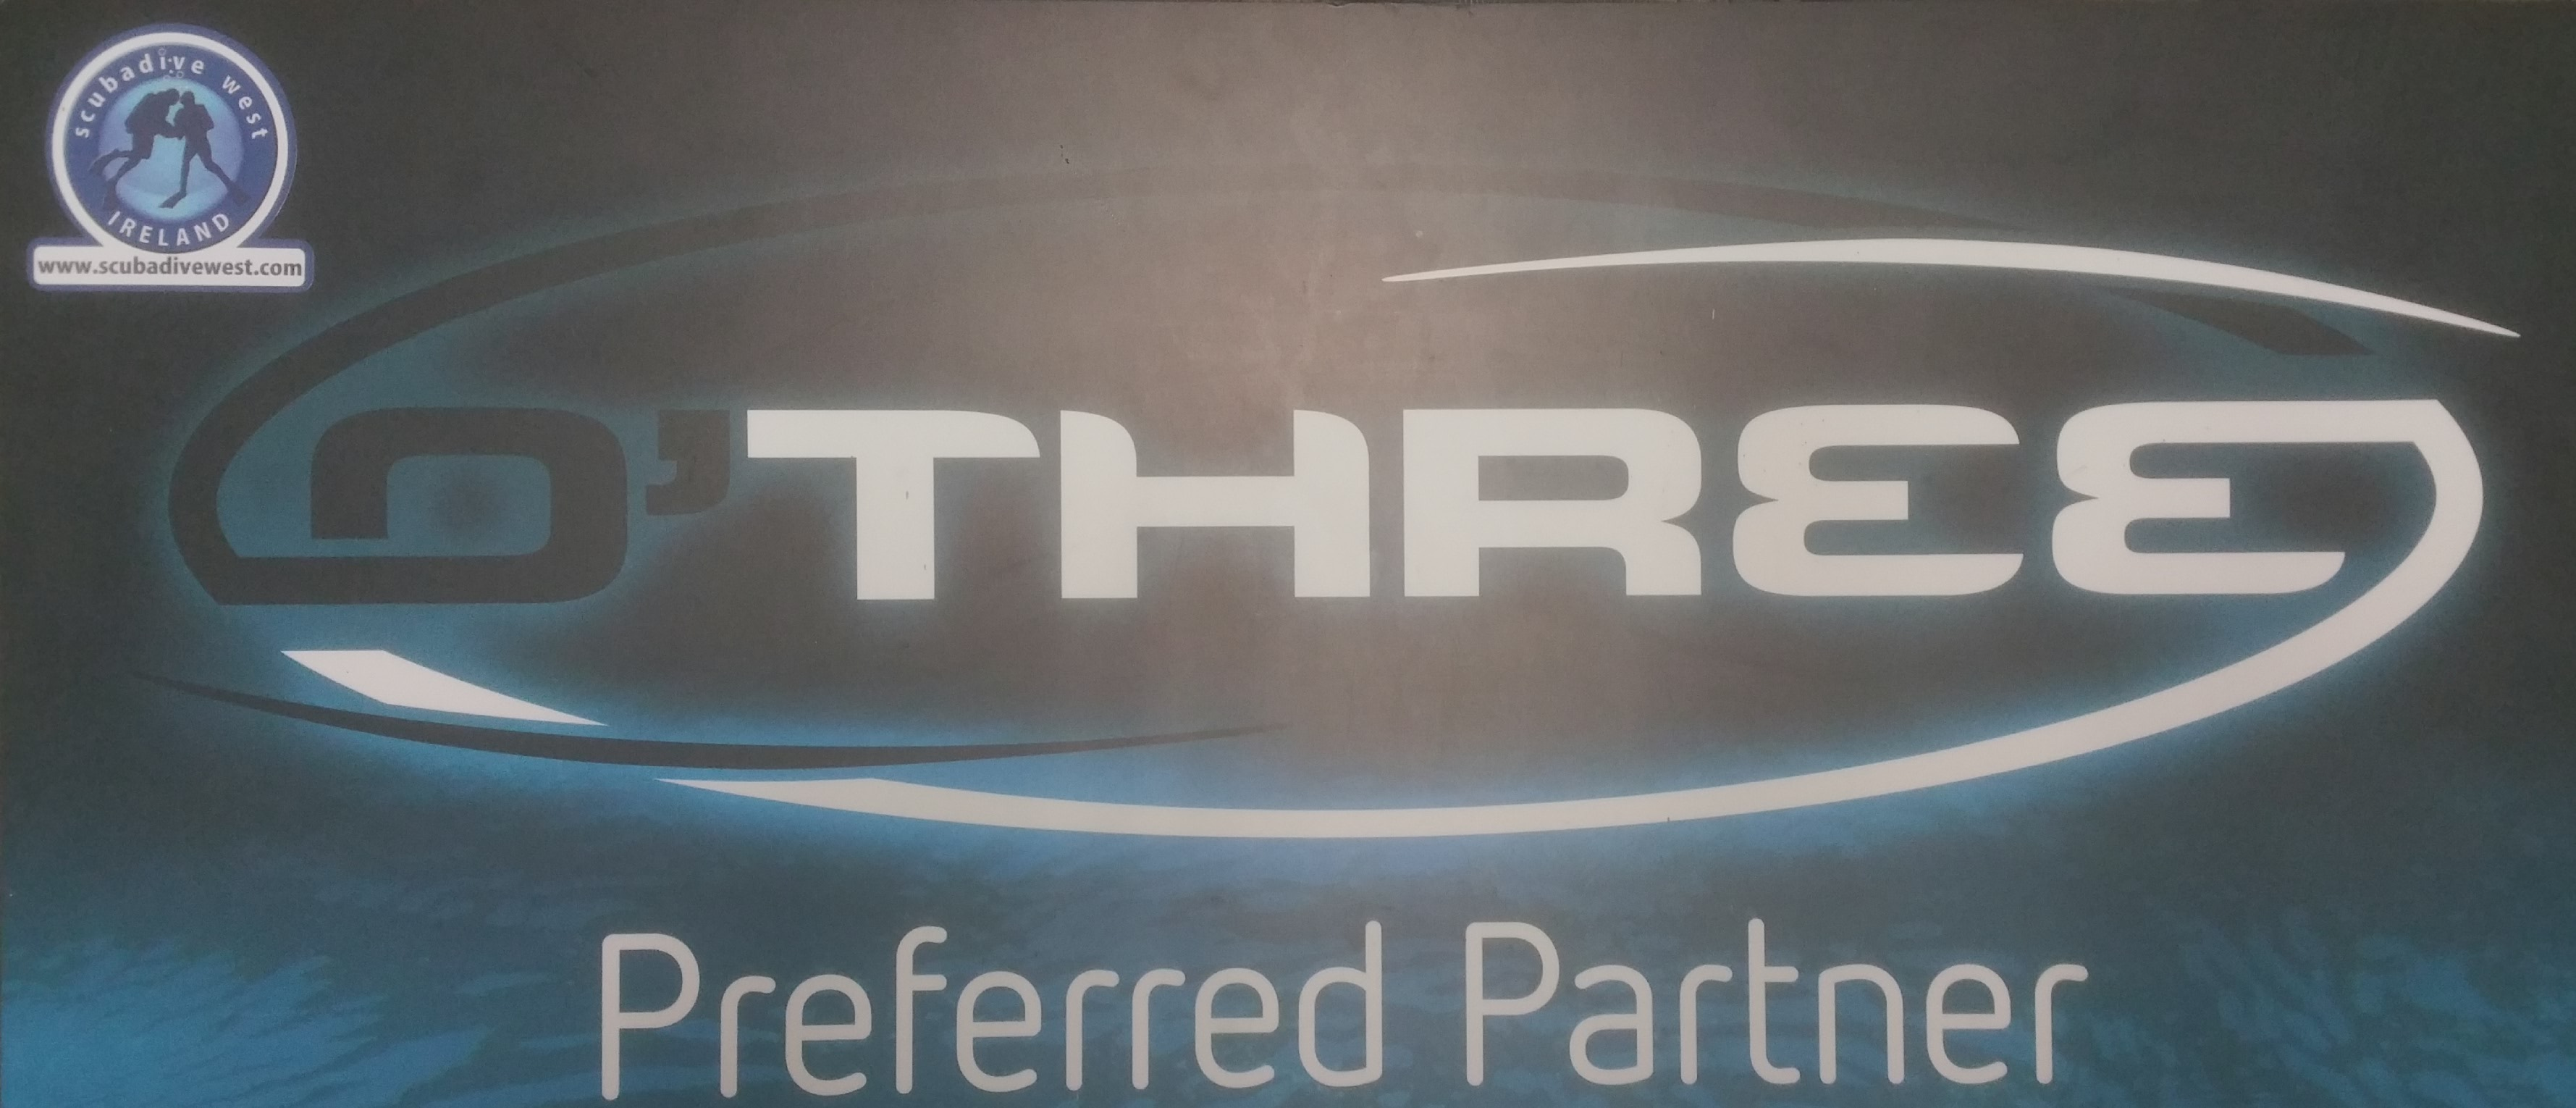 OThree Preferred Partner